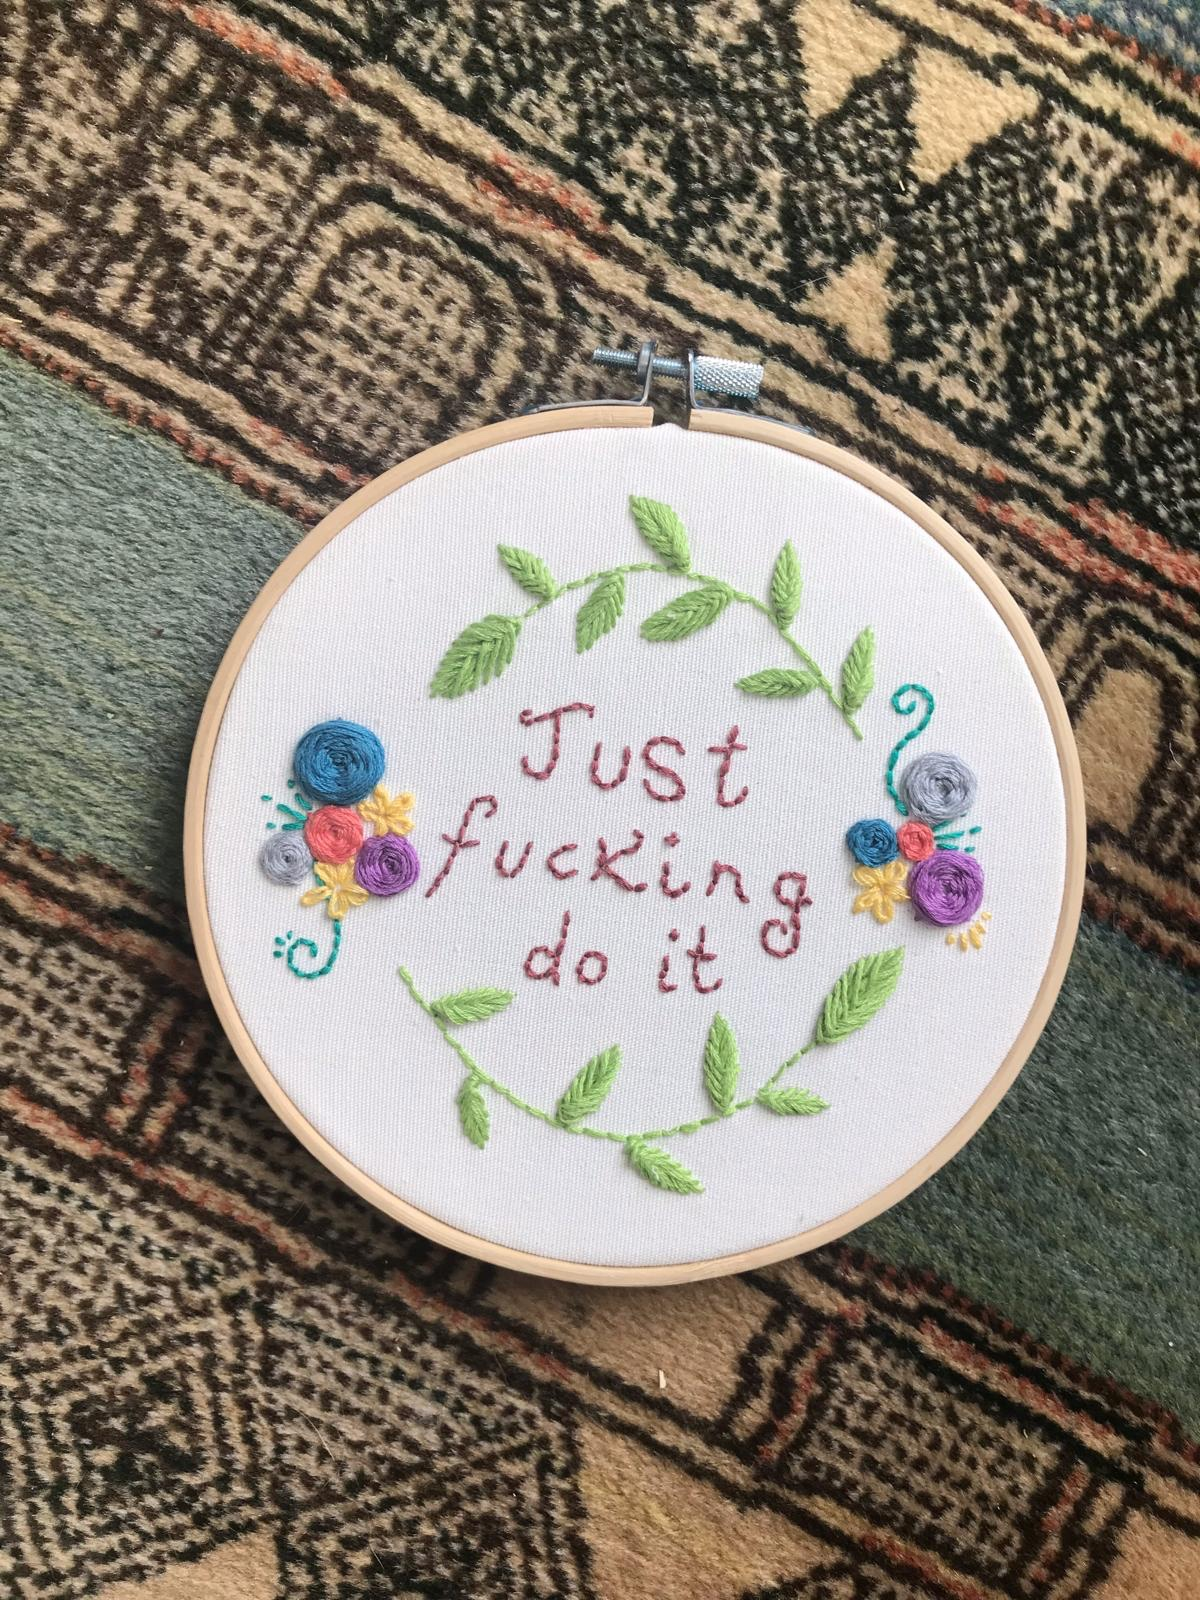 embroidered circle saying just fucking do it